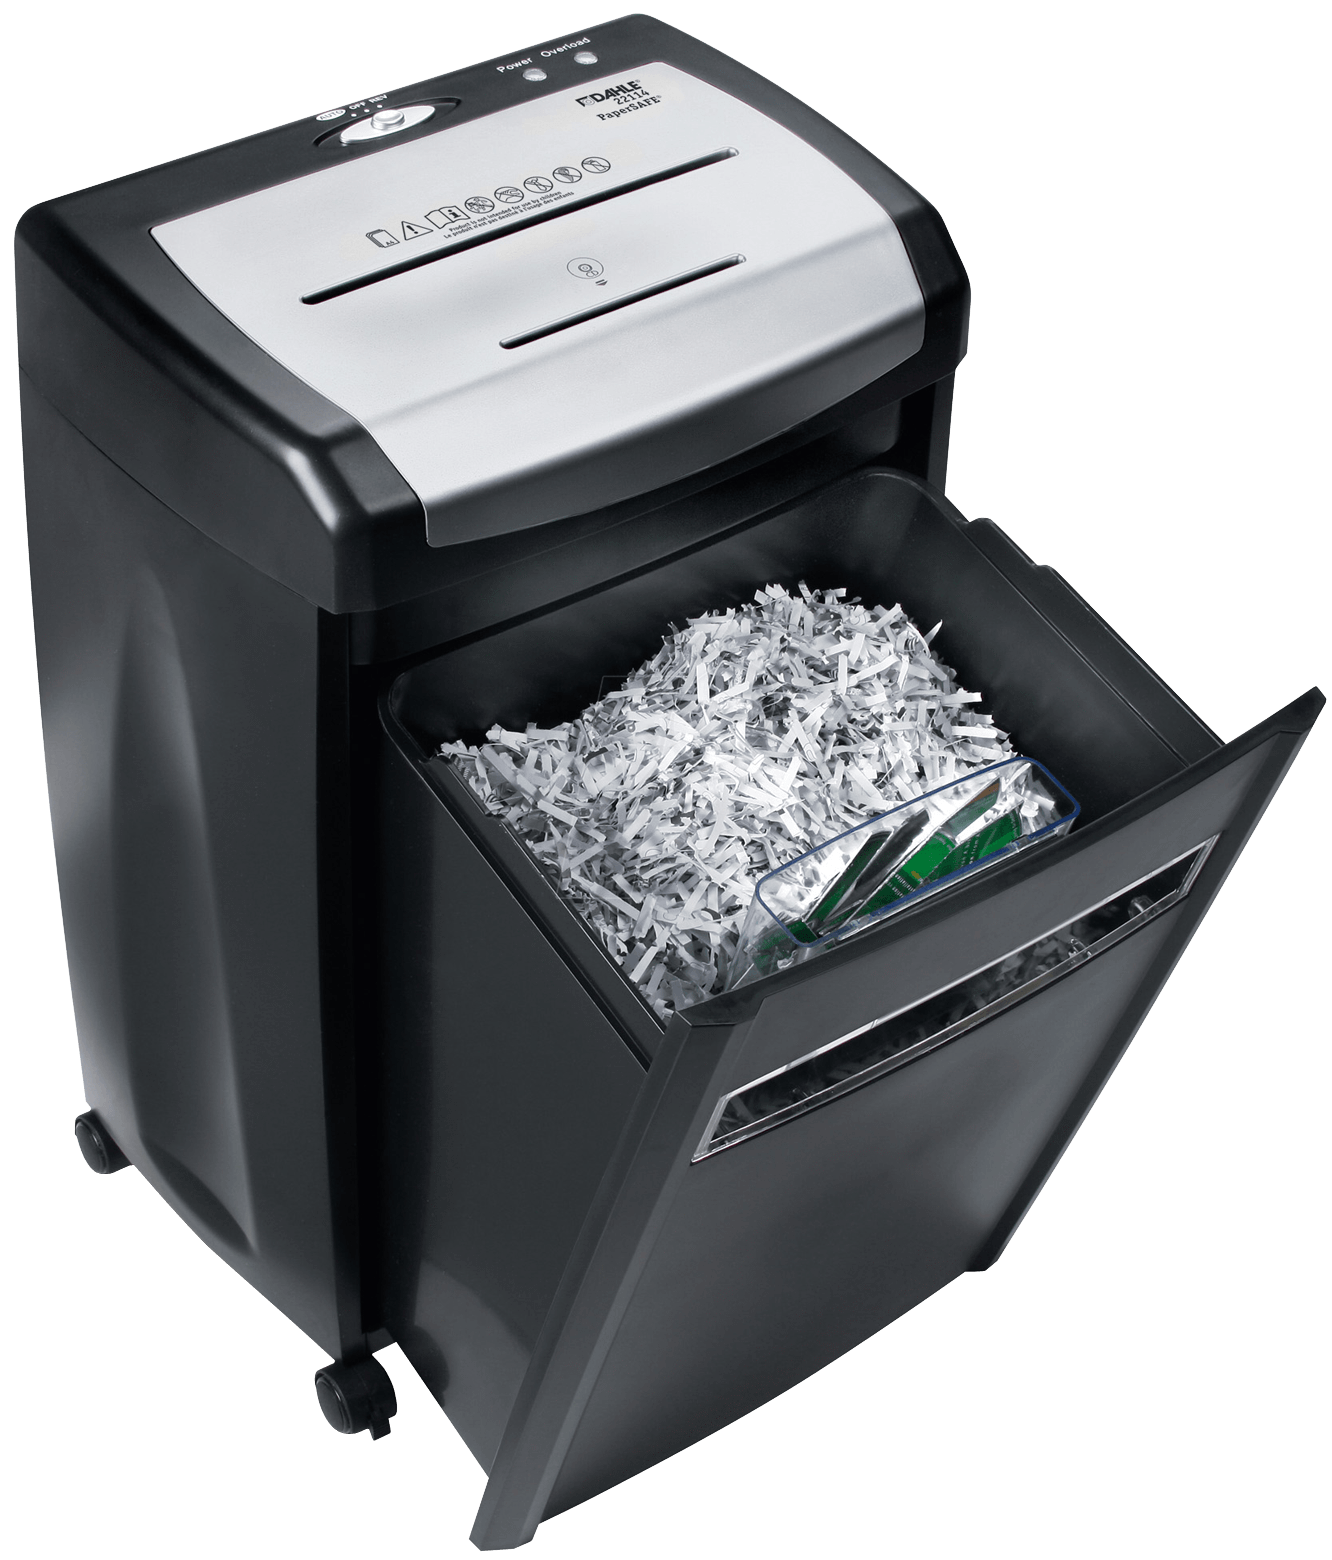 paper shreder Shredders, shredders, office machines, technology & services at office depot & officemax now one company.